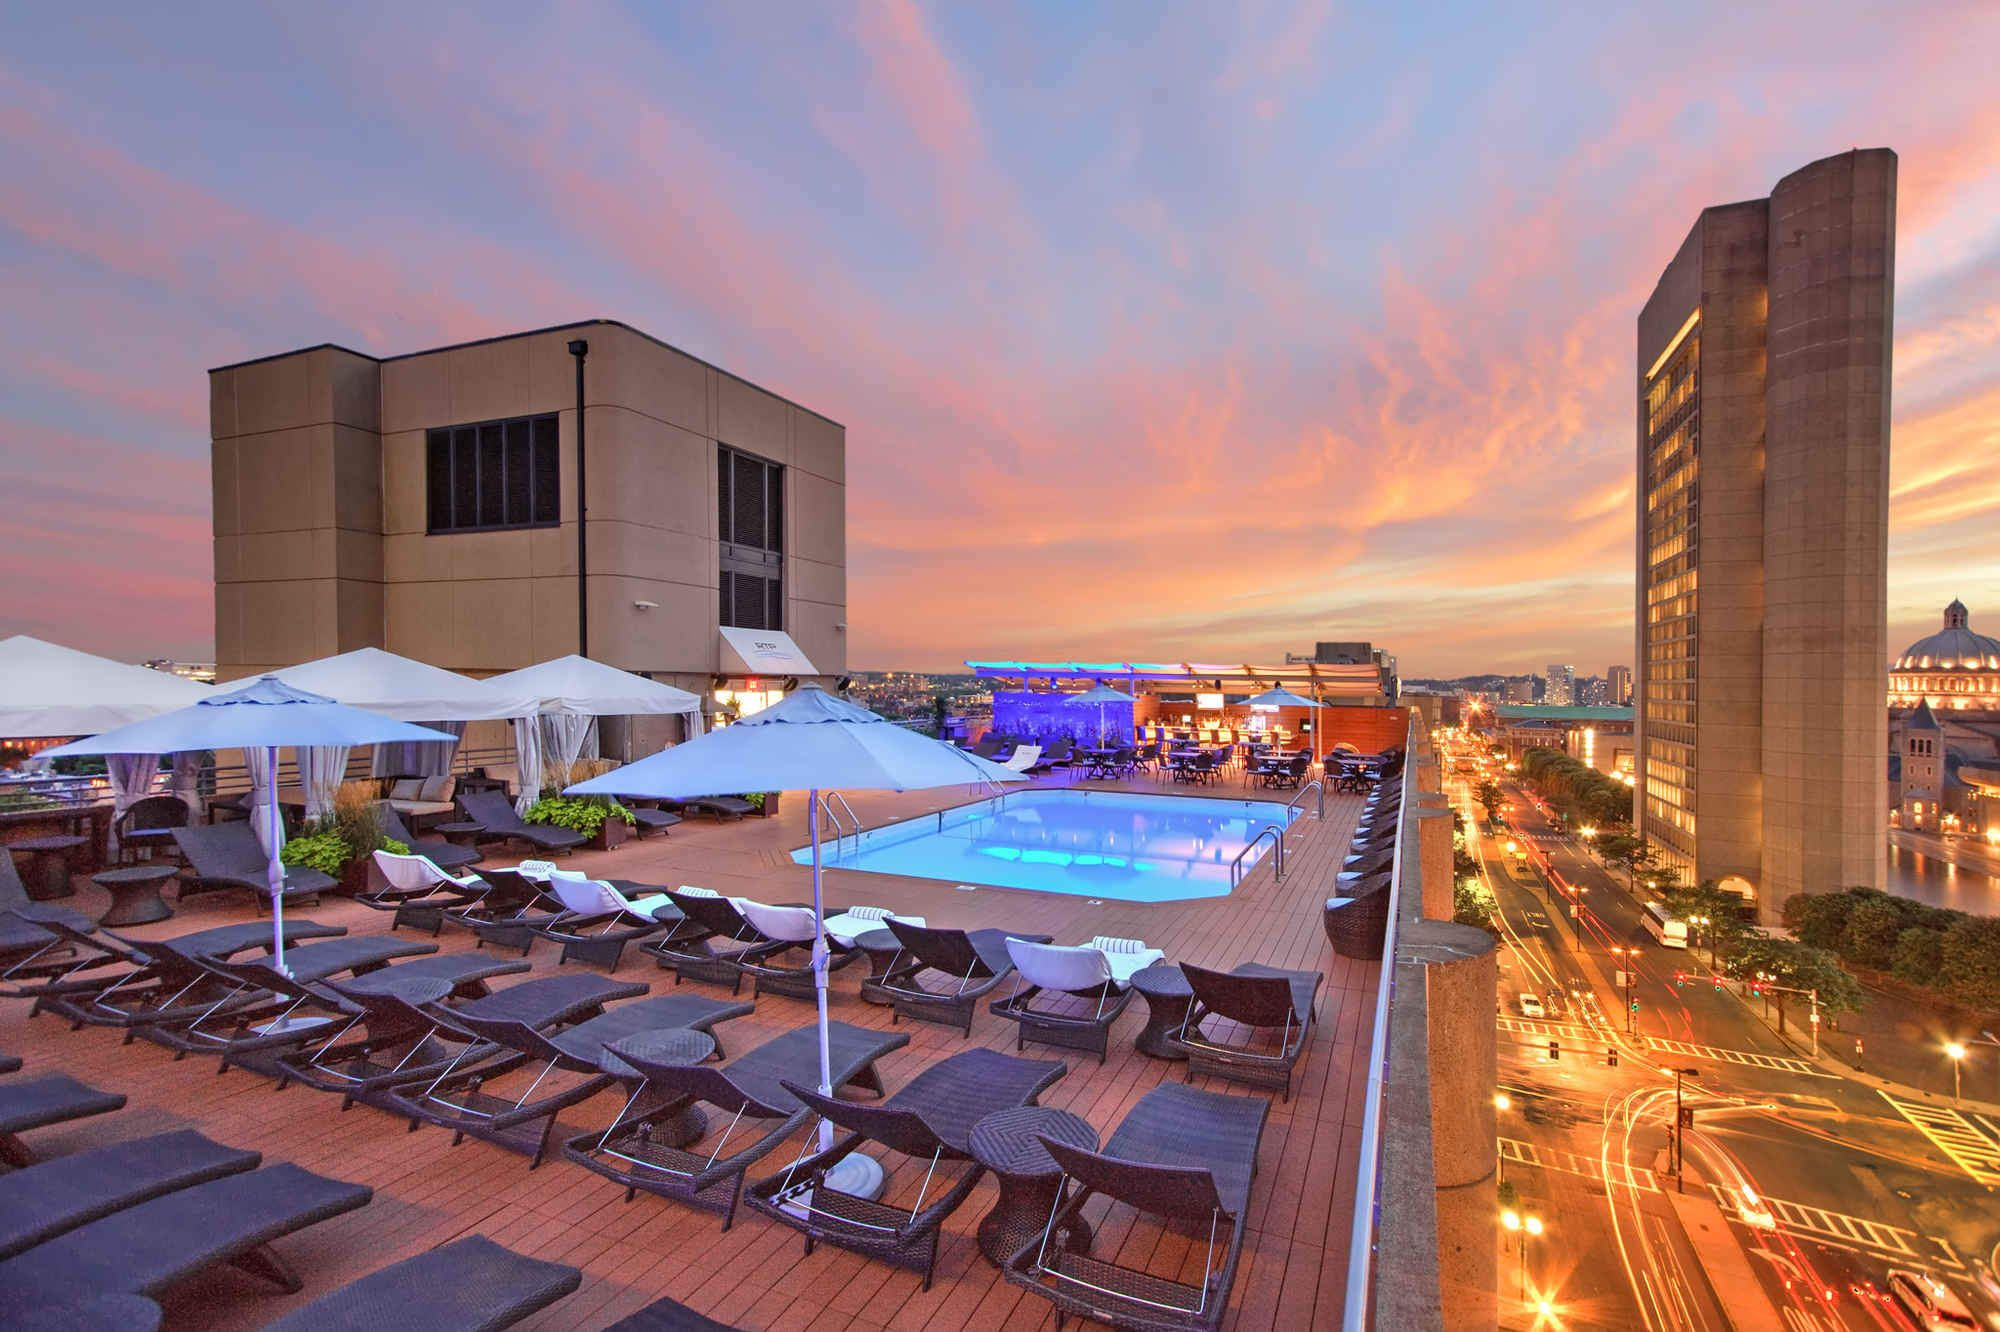 The Most Essential Rooftop Bars In Boston Boston Hotels Best Rooftop Bars Boston Nightlife